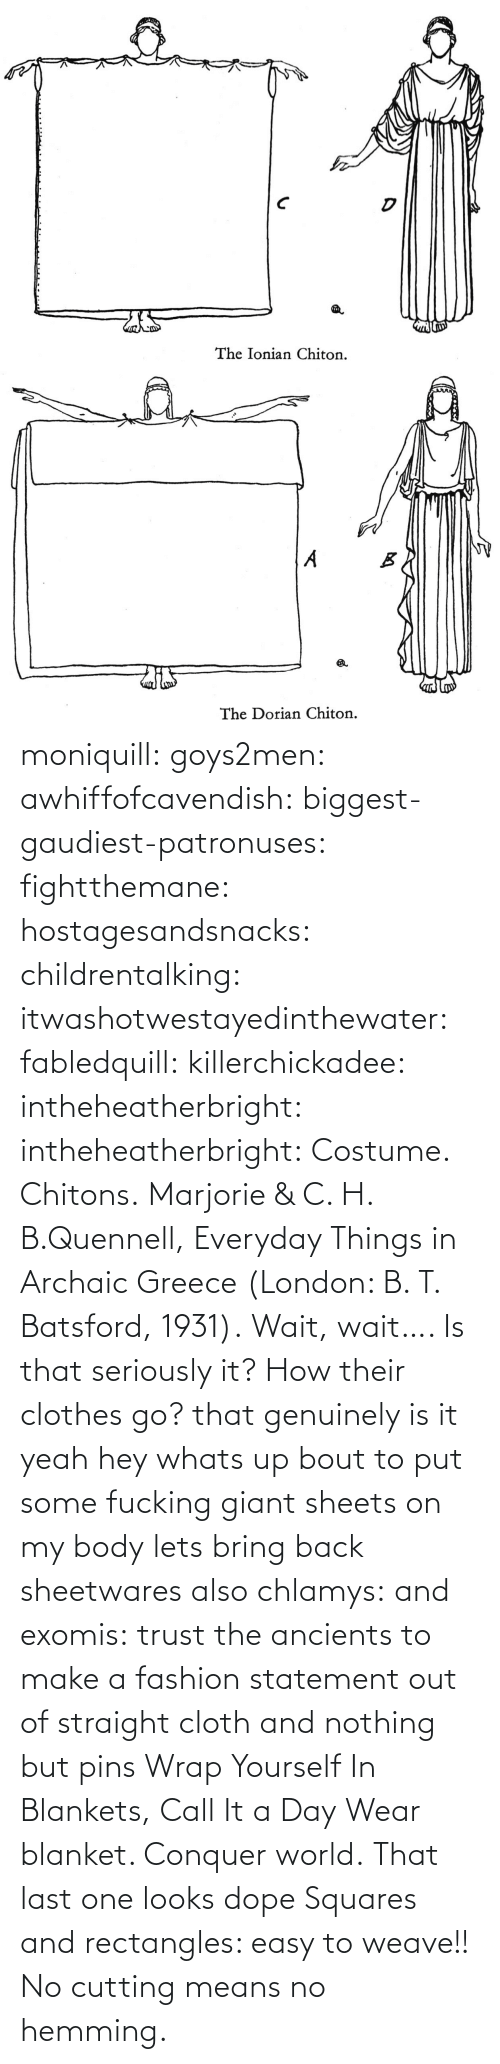 squares: moniquill: goys2men:  awhiffofcavendish:  biggest-gaudiest-patronuses:  fightthemane:  hostagesandsnacks:  childrentalking:  itwashotwestayedinthewater:  fabledquill:  killerchickadee:  intheheatherbright:  intheheatherbright:  Costume. Chitons.  Marjorie & C. H. B.Quennell, Everyday Things in Archaic Greece (London: B. T. Batsford, 1931).  Wait, wait…. Is that seriously it? How their clothes go?  that genuinely is it  yeah hey whats up bout to put some fucking giant sheets on my body  lets bring back sheetwares  also chlamys: and exomis:  trust the ancients to make a fashion statement out of straight cloth and nothing but pins  Wrap Yourself In Blankets, Call It a Day  Wear blanket. Conquer world.   That last one looks dope    Squares and rectangles: easy to weave!! No cutting means no hemming.